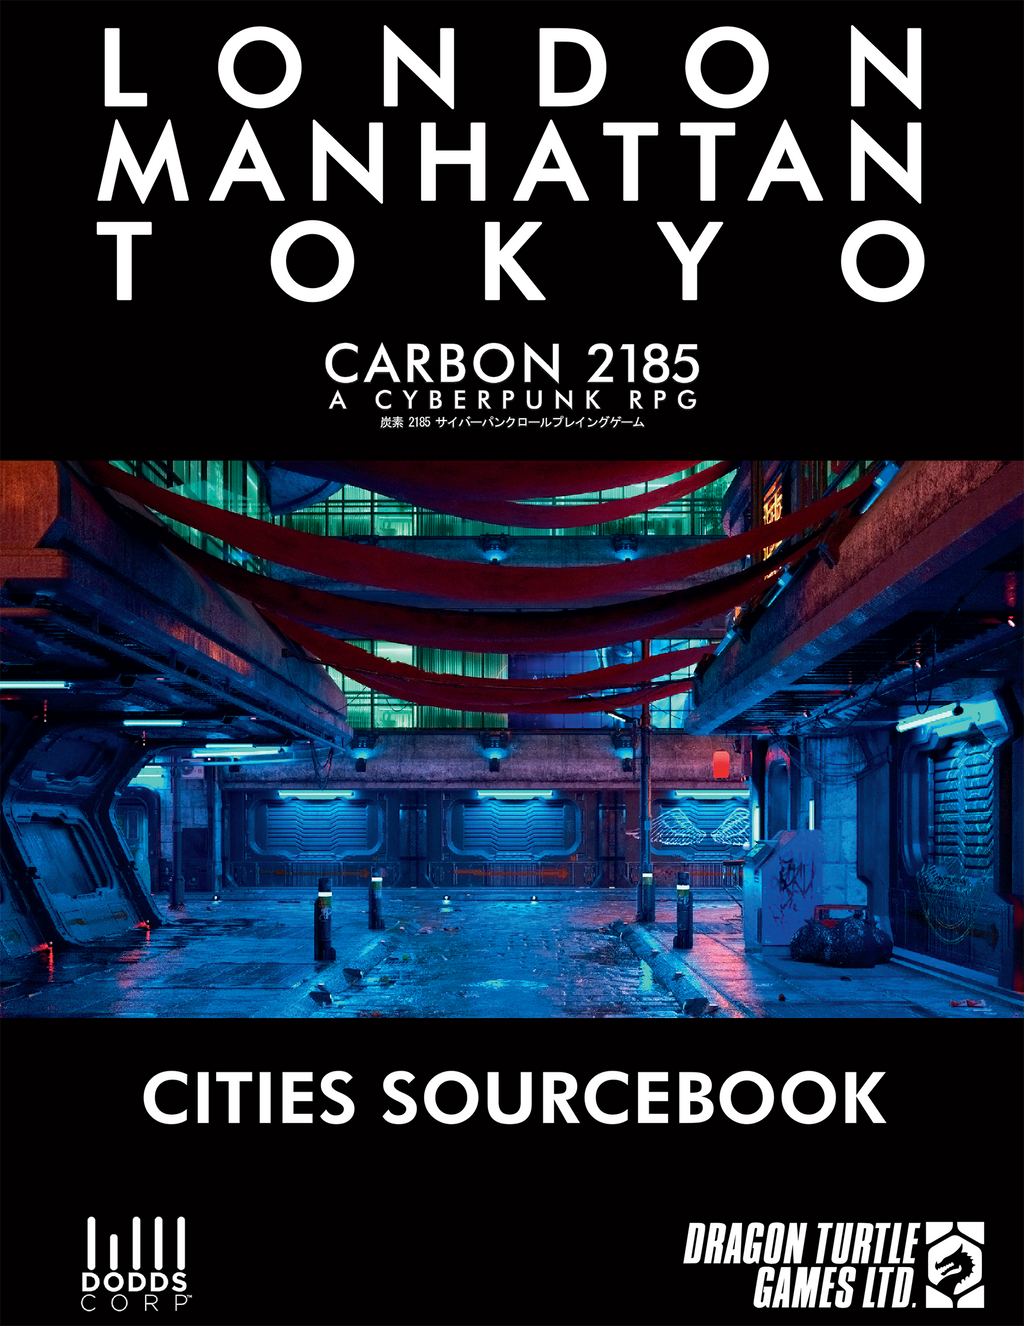 Cities Sourcebook PDF | Carbon 2185 A Cyberpunk RPG